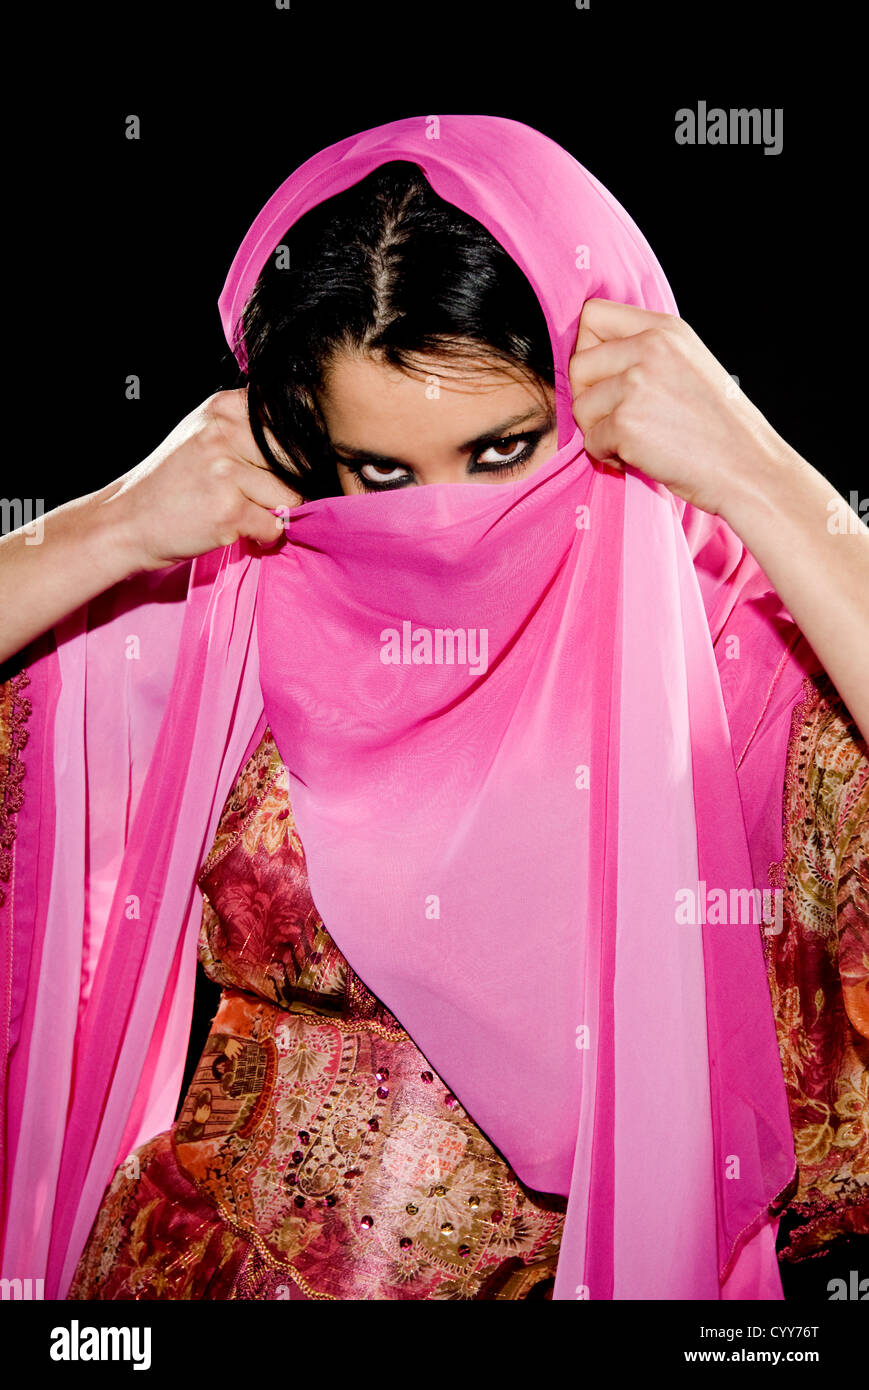 Arabian woman wearing traditional dress on black background - Stock Image